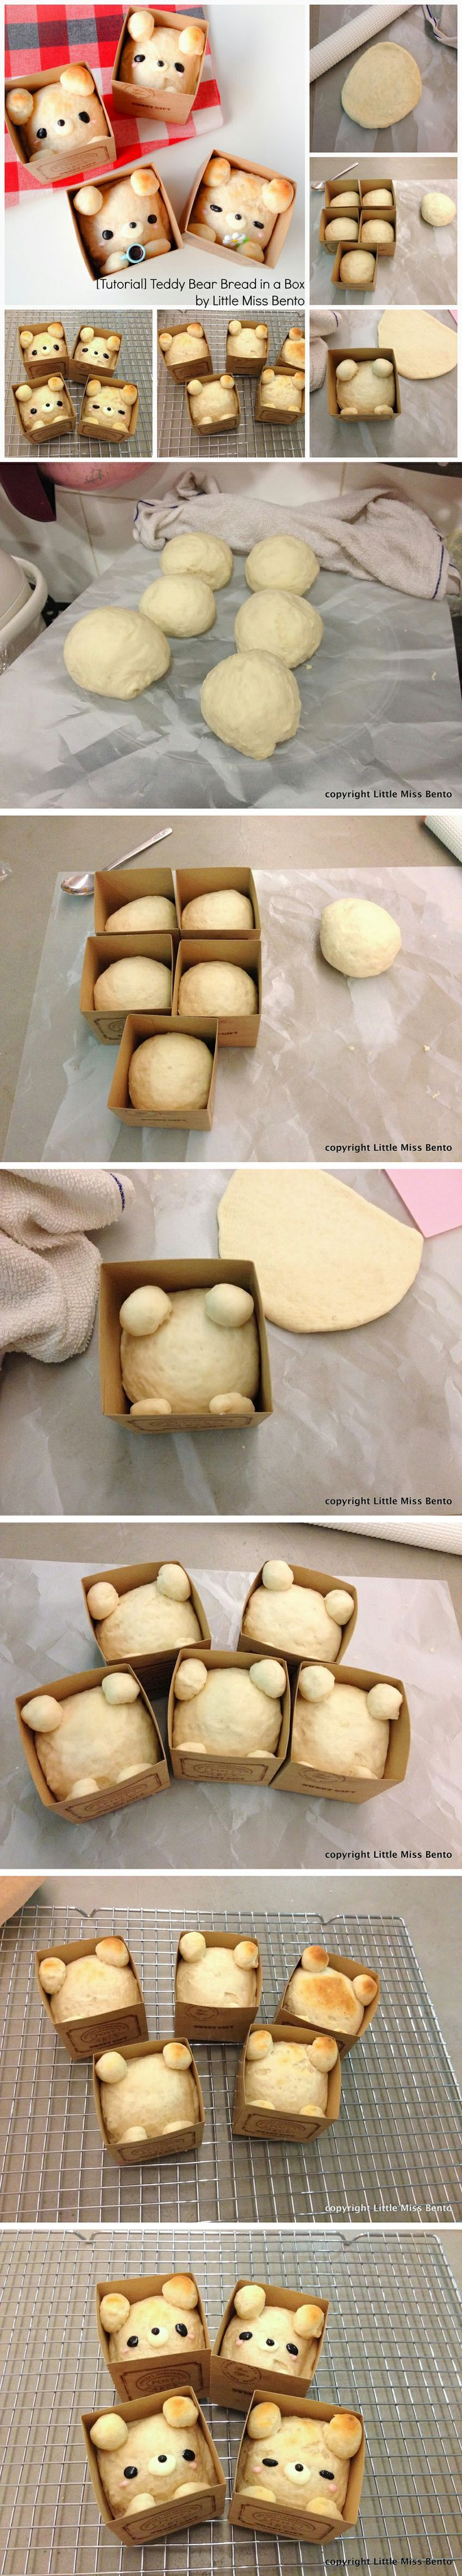 Teddy Bear Bread in a Box | via Little Miss Bento